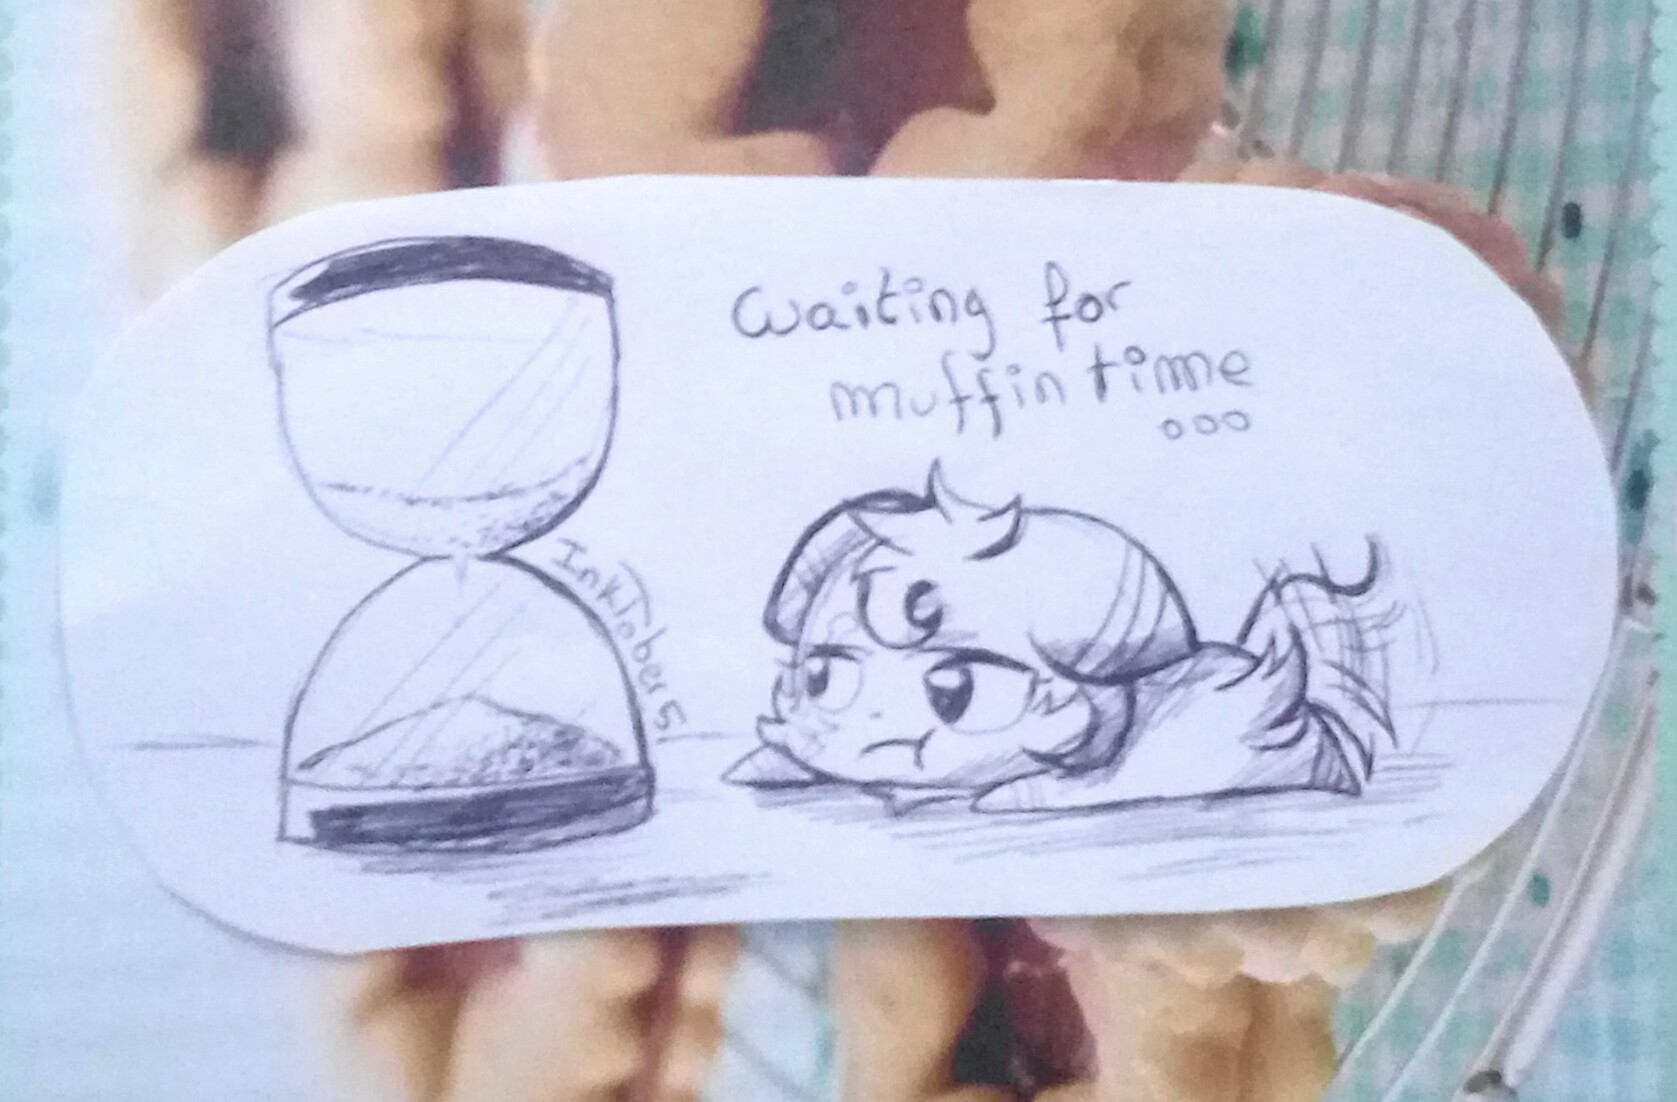 Galerie d'un p'tit chat! - Page 6 _inktober__5__waiting_for_muffin_time_by_meyan_chama-dbplj35